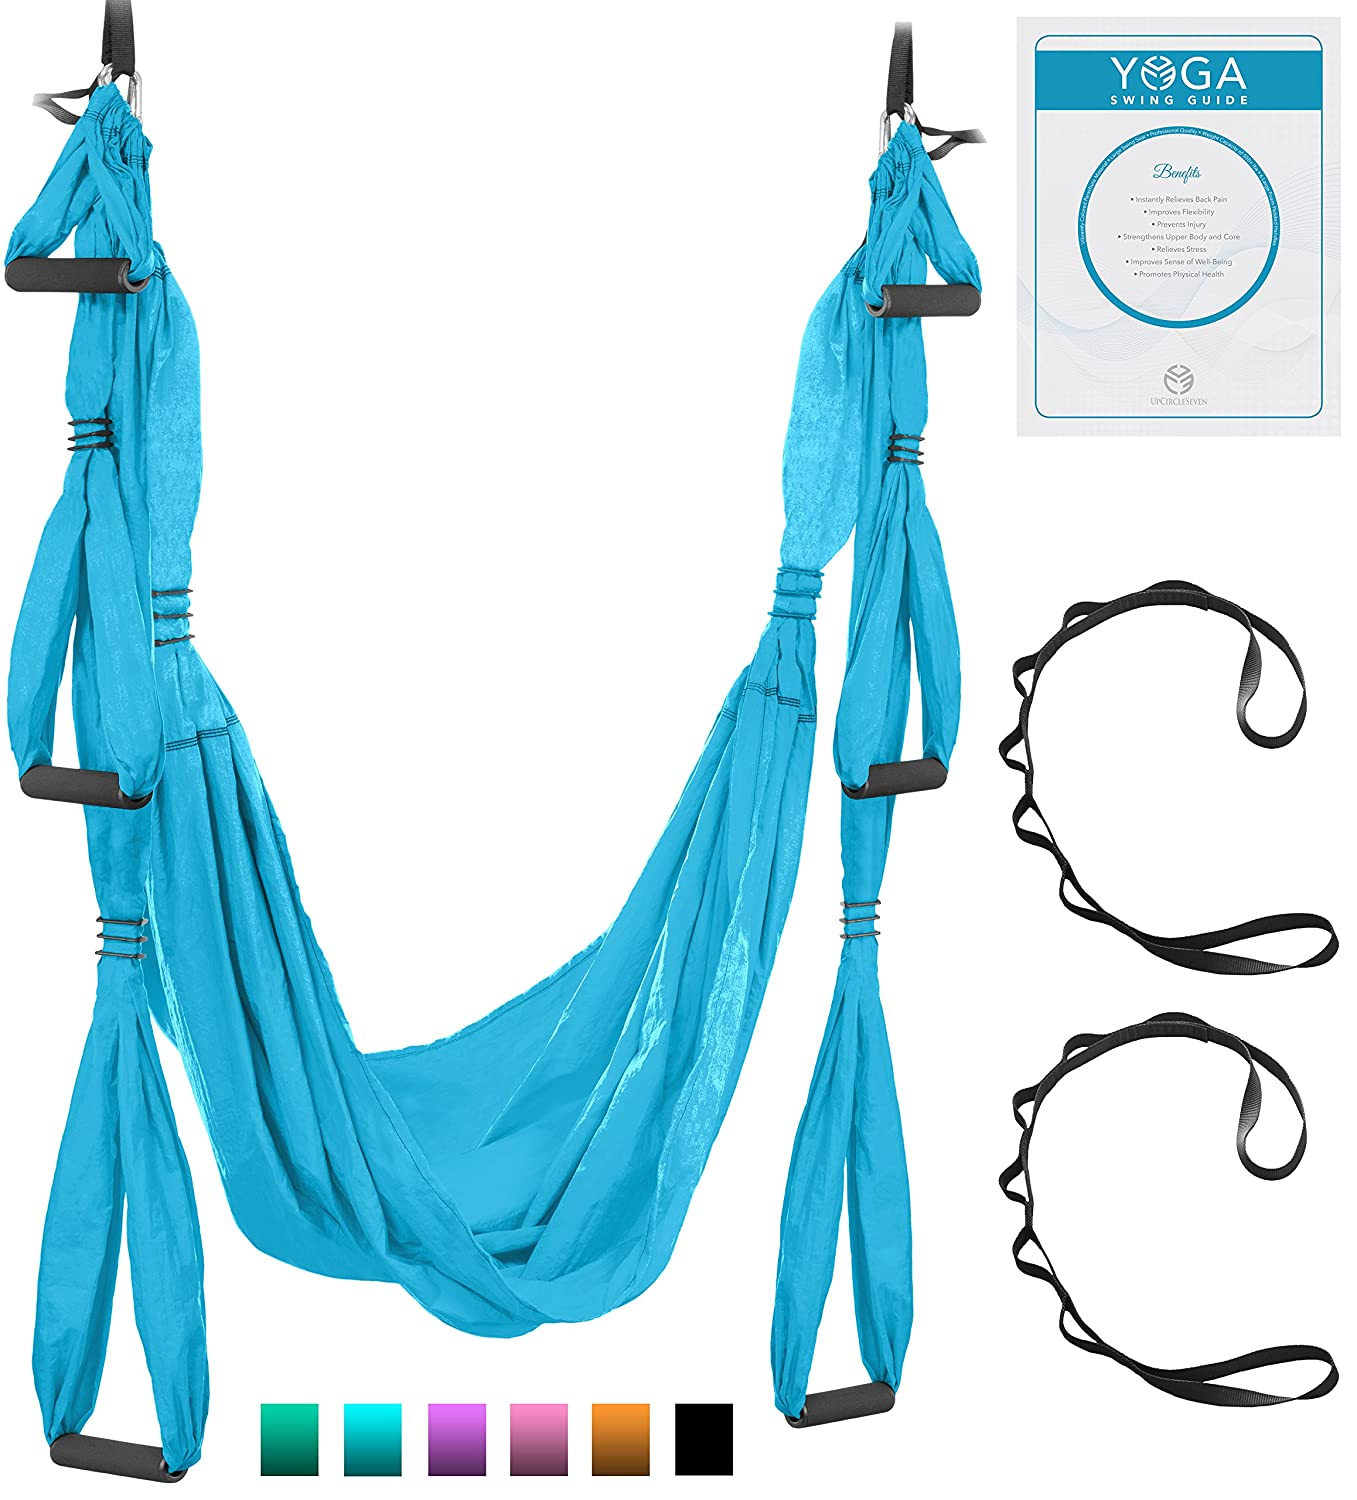 UpCircleSeven Aerial Yoga Swing Set - Yoga Hammock/Trapeze/Sling Kit + Extension Straps & eBook - Antigravity Ceiling Hanging Yoga Sling - Inversion Swing for Beginners & Kids